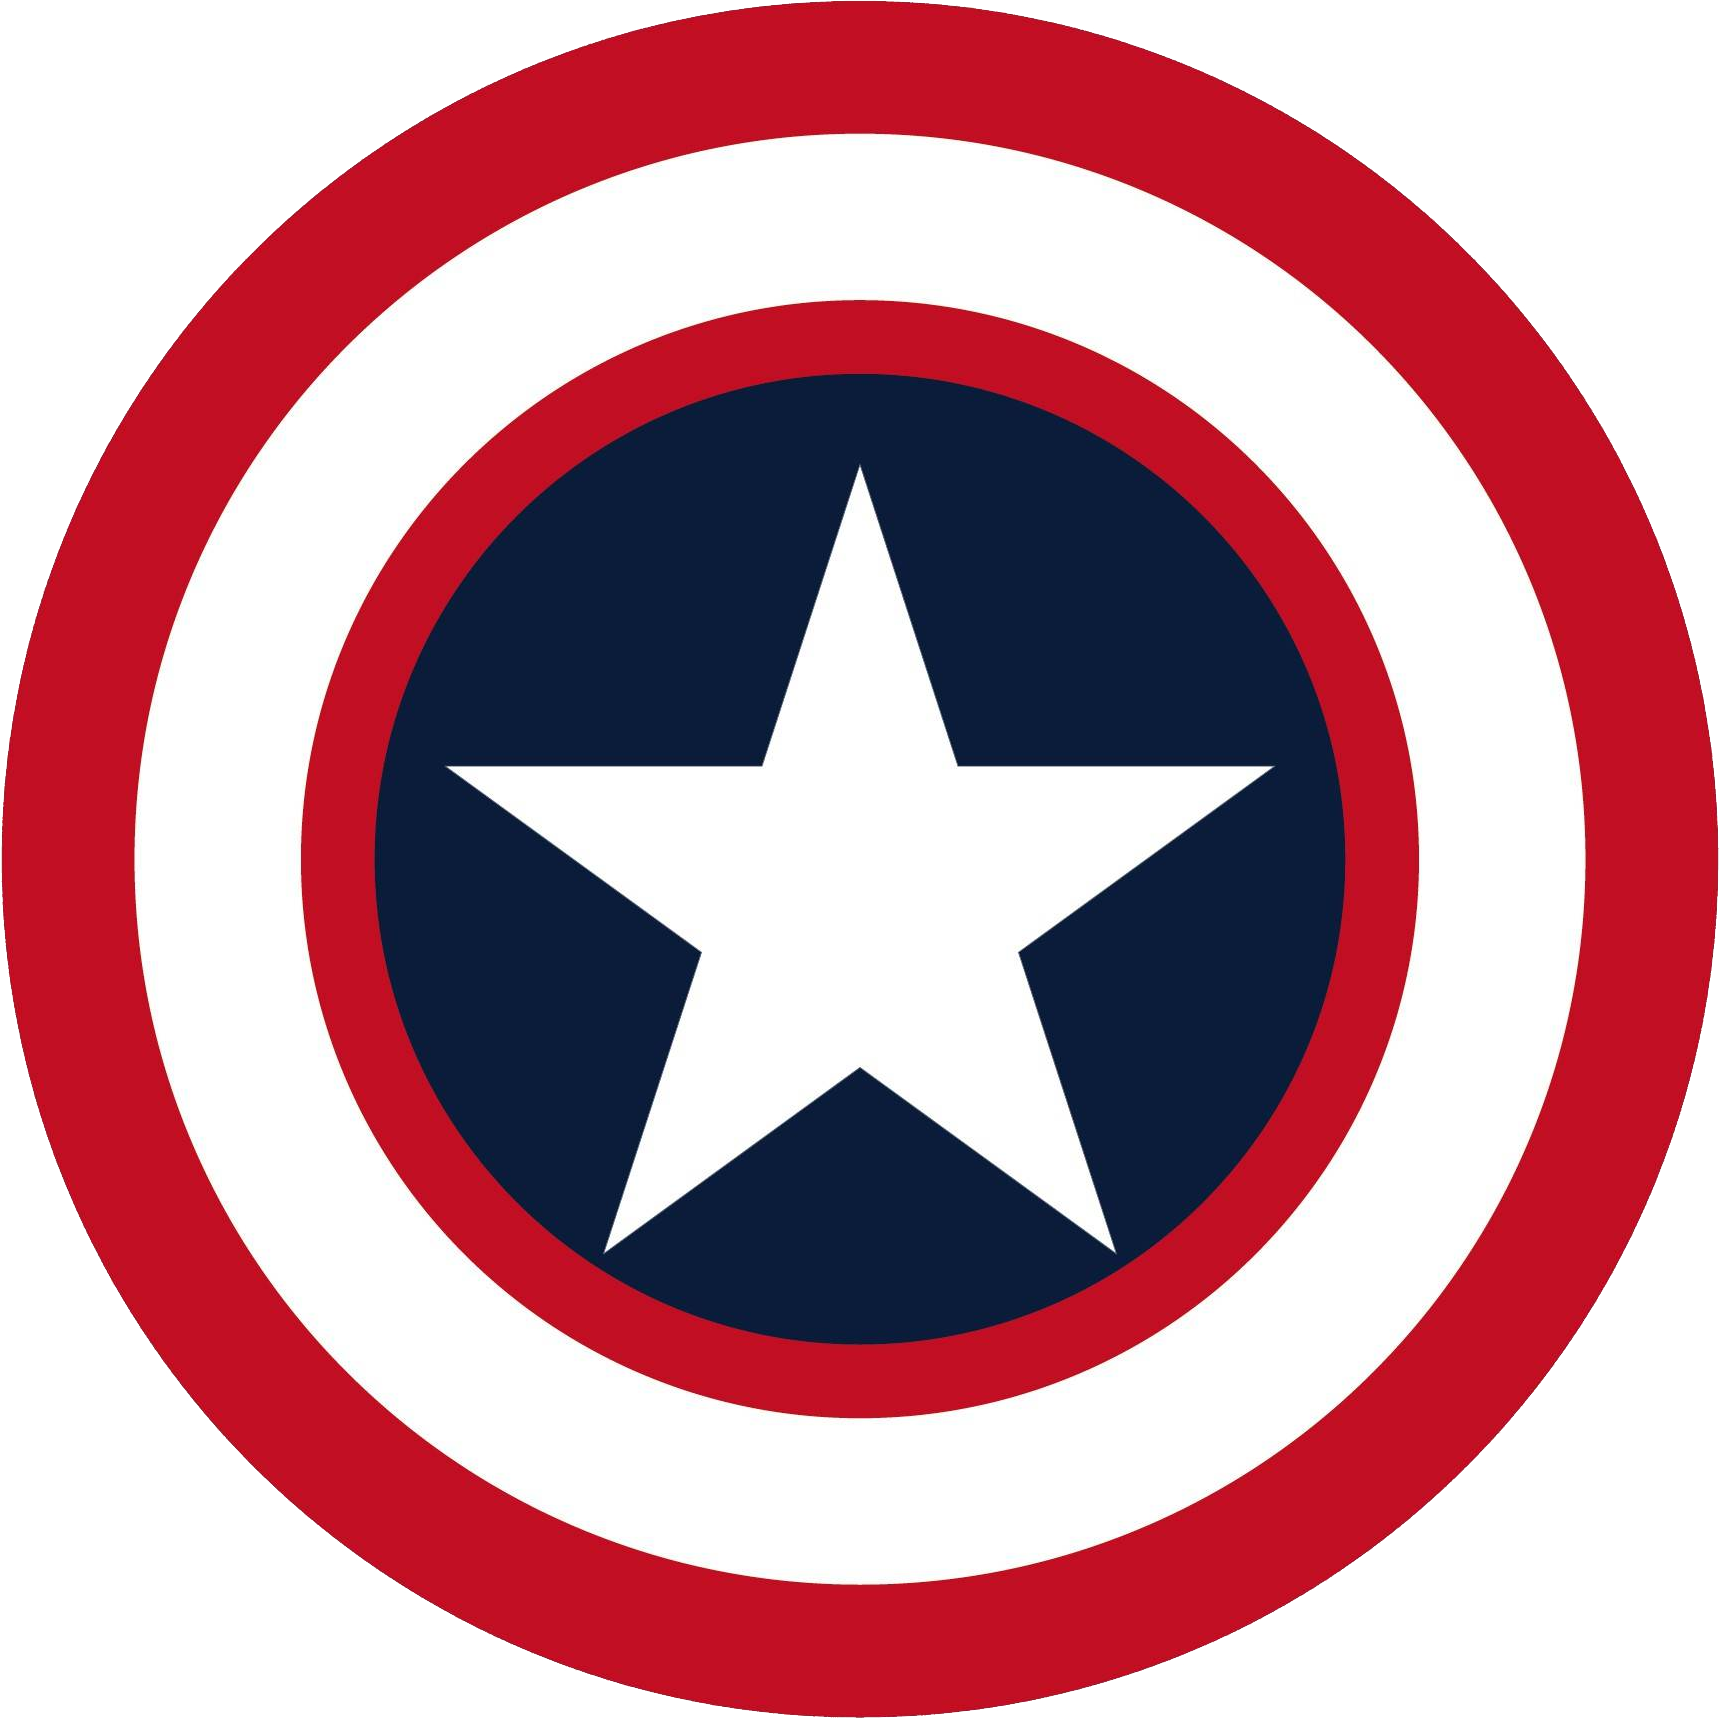 America images free download. Captain marvel logo png image black and white stock